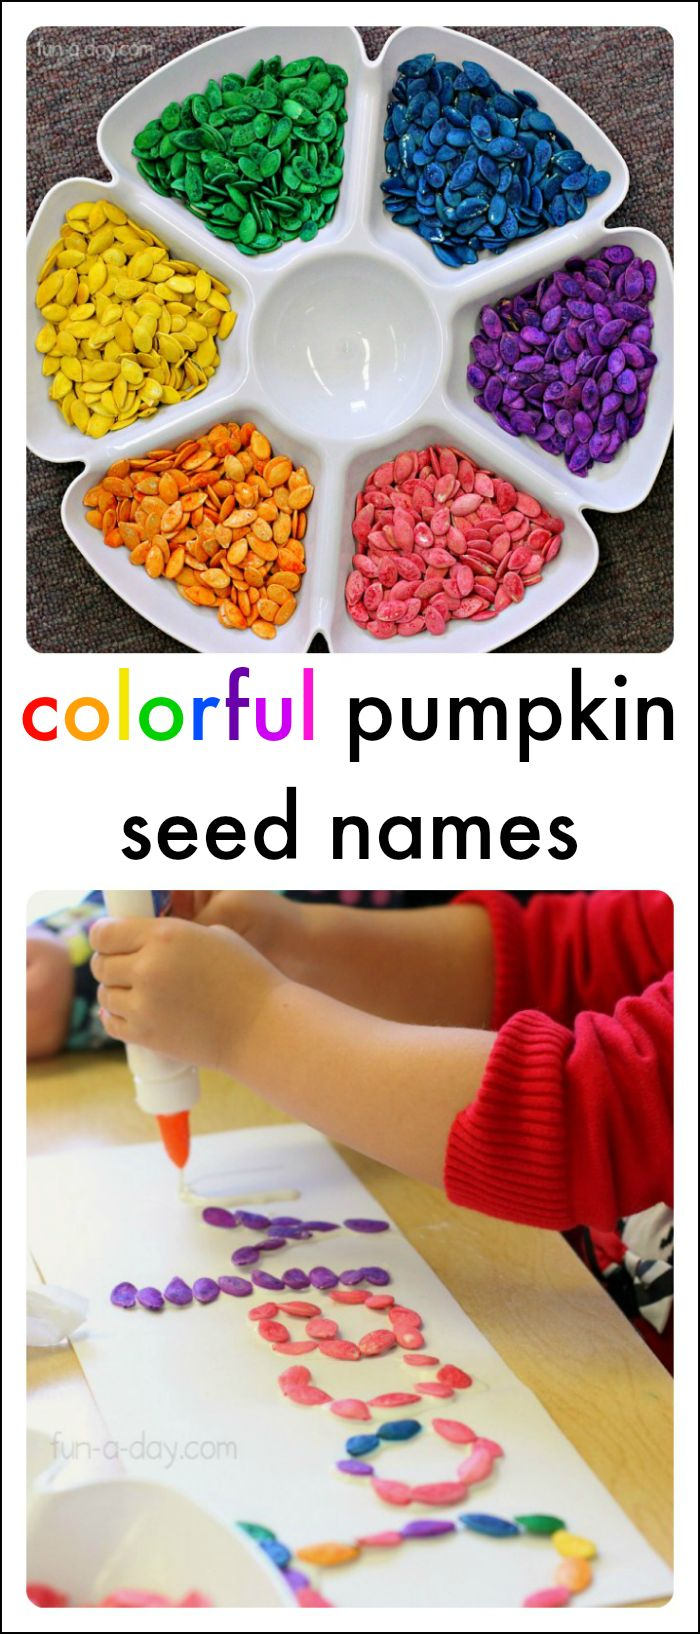 Rainbow pumpkin seeds name activities for kids to try today